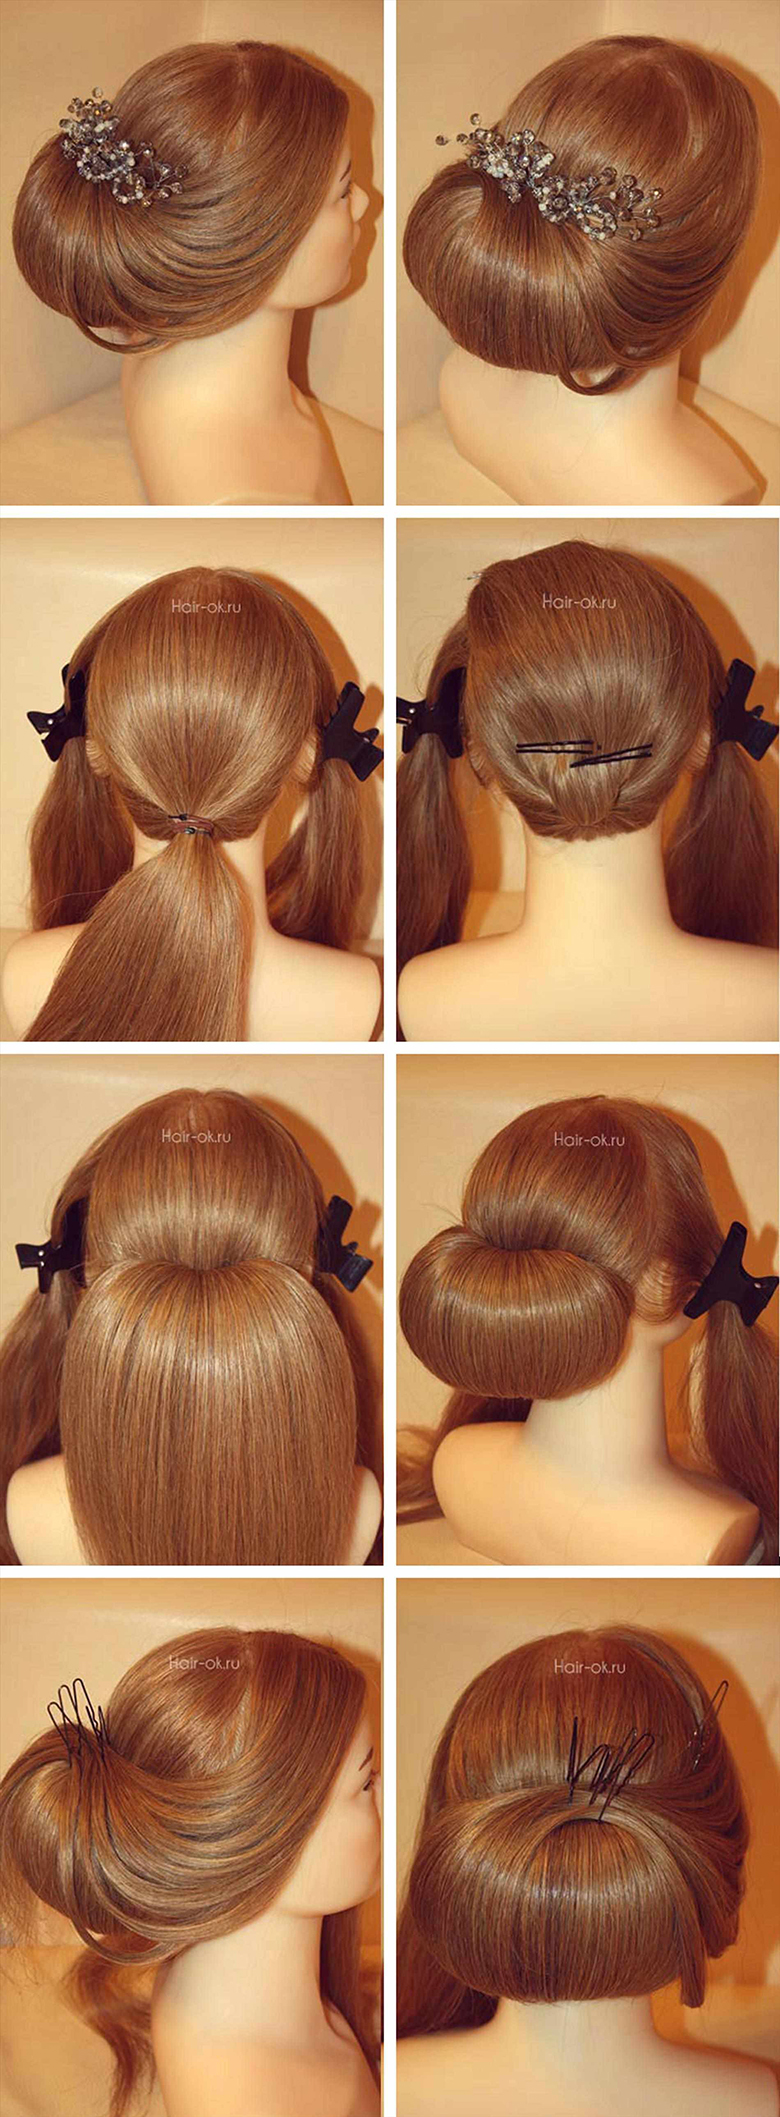 13 Easy Amp Quick Hairstyles To Look Elegance In Parties